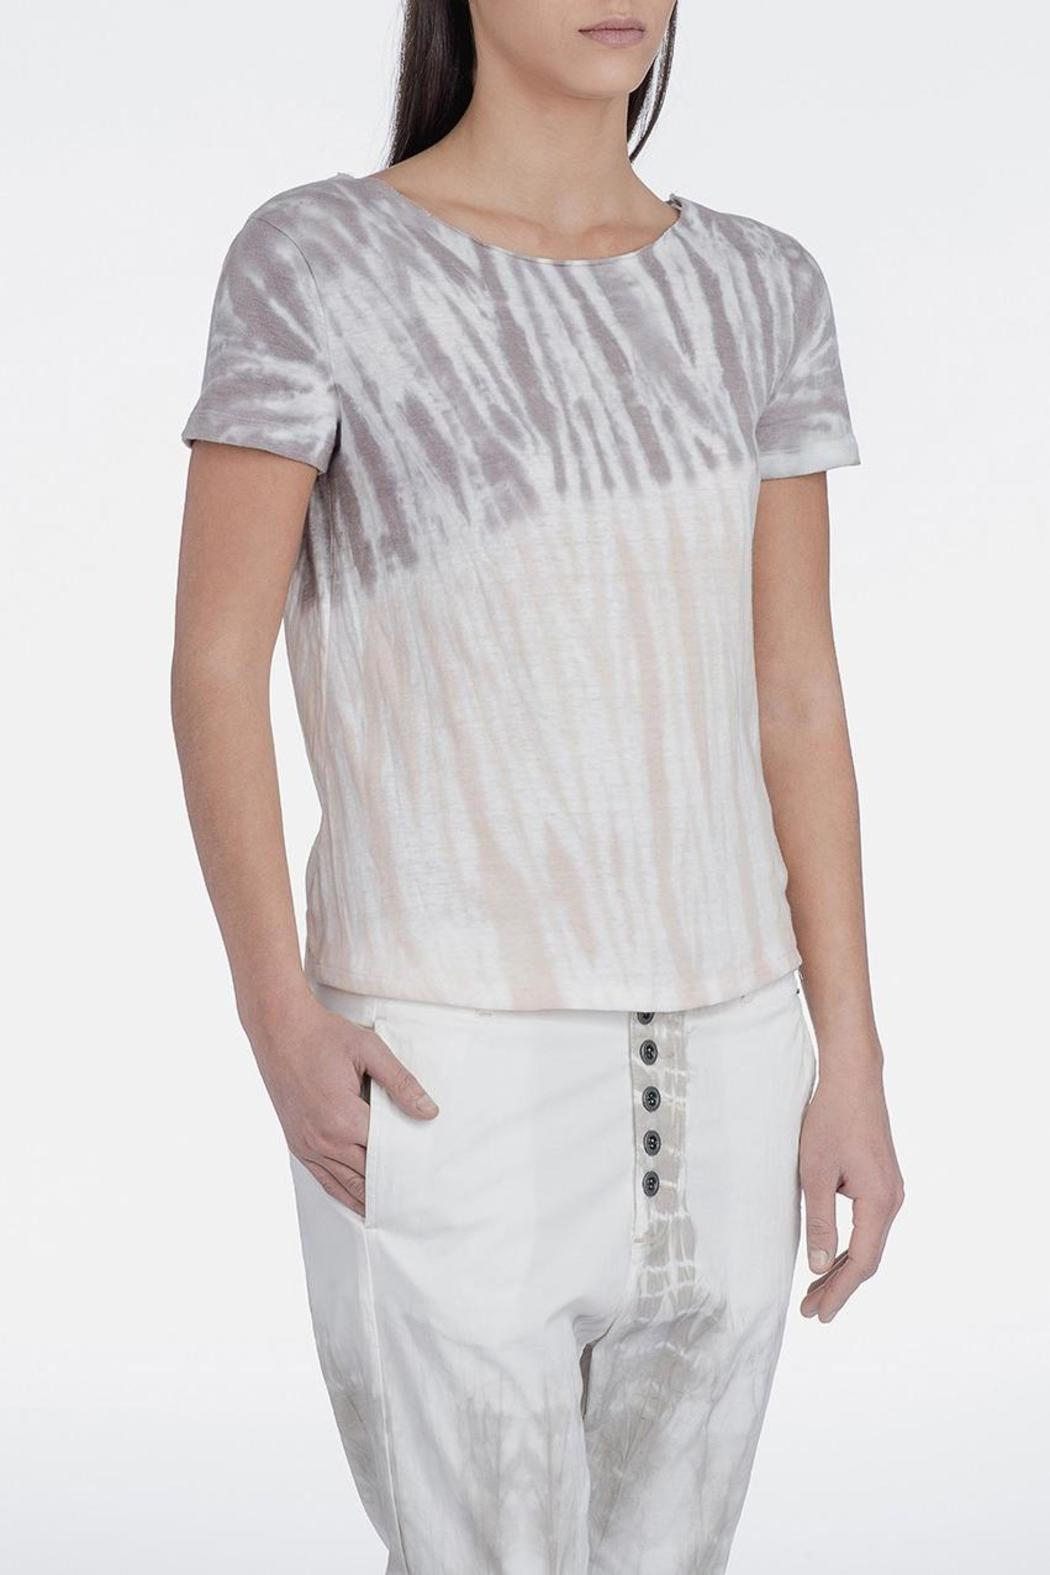 Sack s rick shredded tee from north yorkshire by boho chic